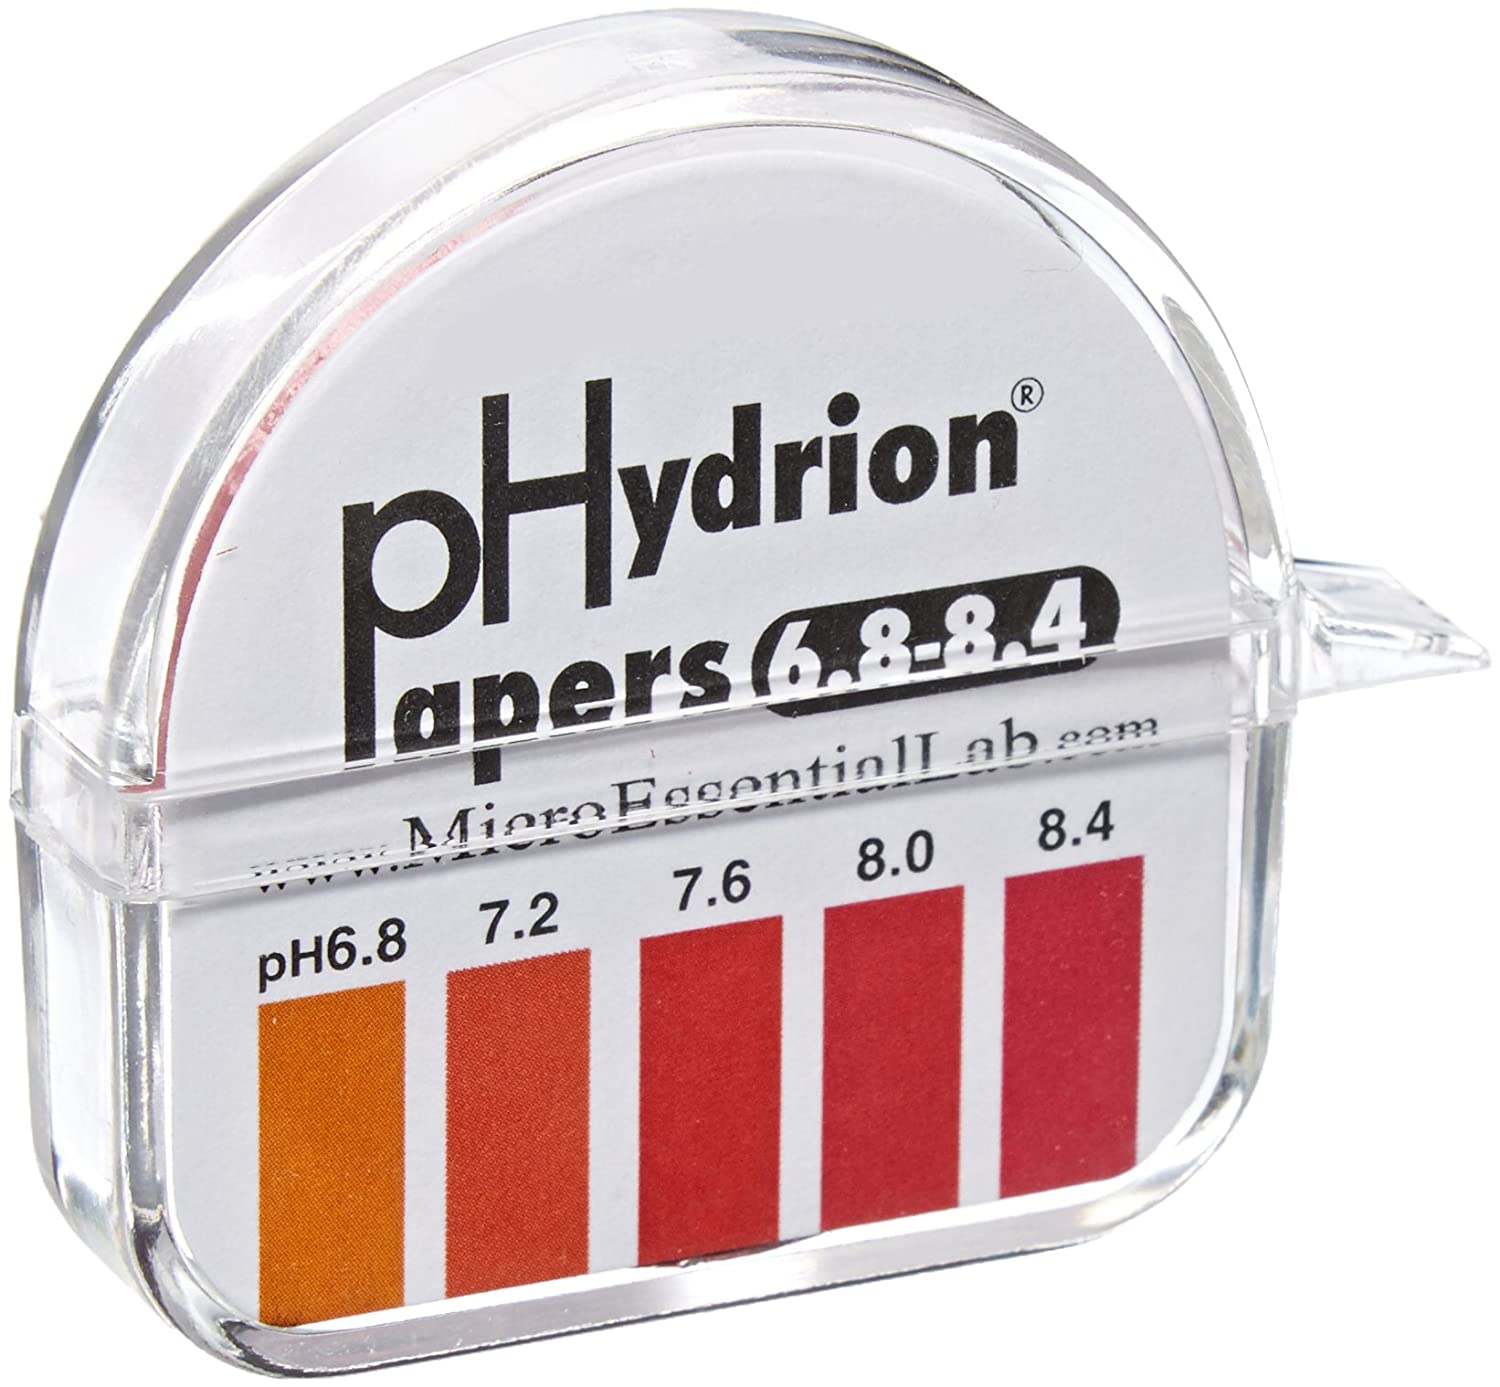 Lamotte 2907 ph test paper phenol red 68 84ph range 02ph lamotte 2907 ph test paper phenol red 68 84ph range 02ph sensitivity ph test strips amazon industrial scientific geenschuldenfo Image collections